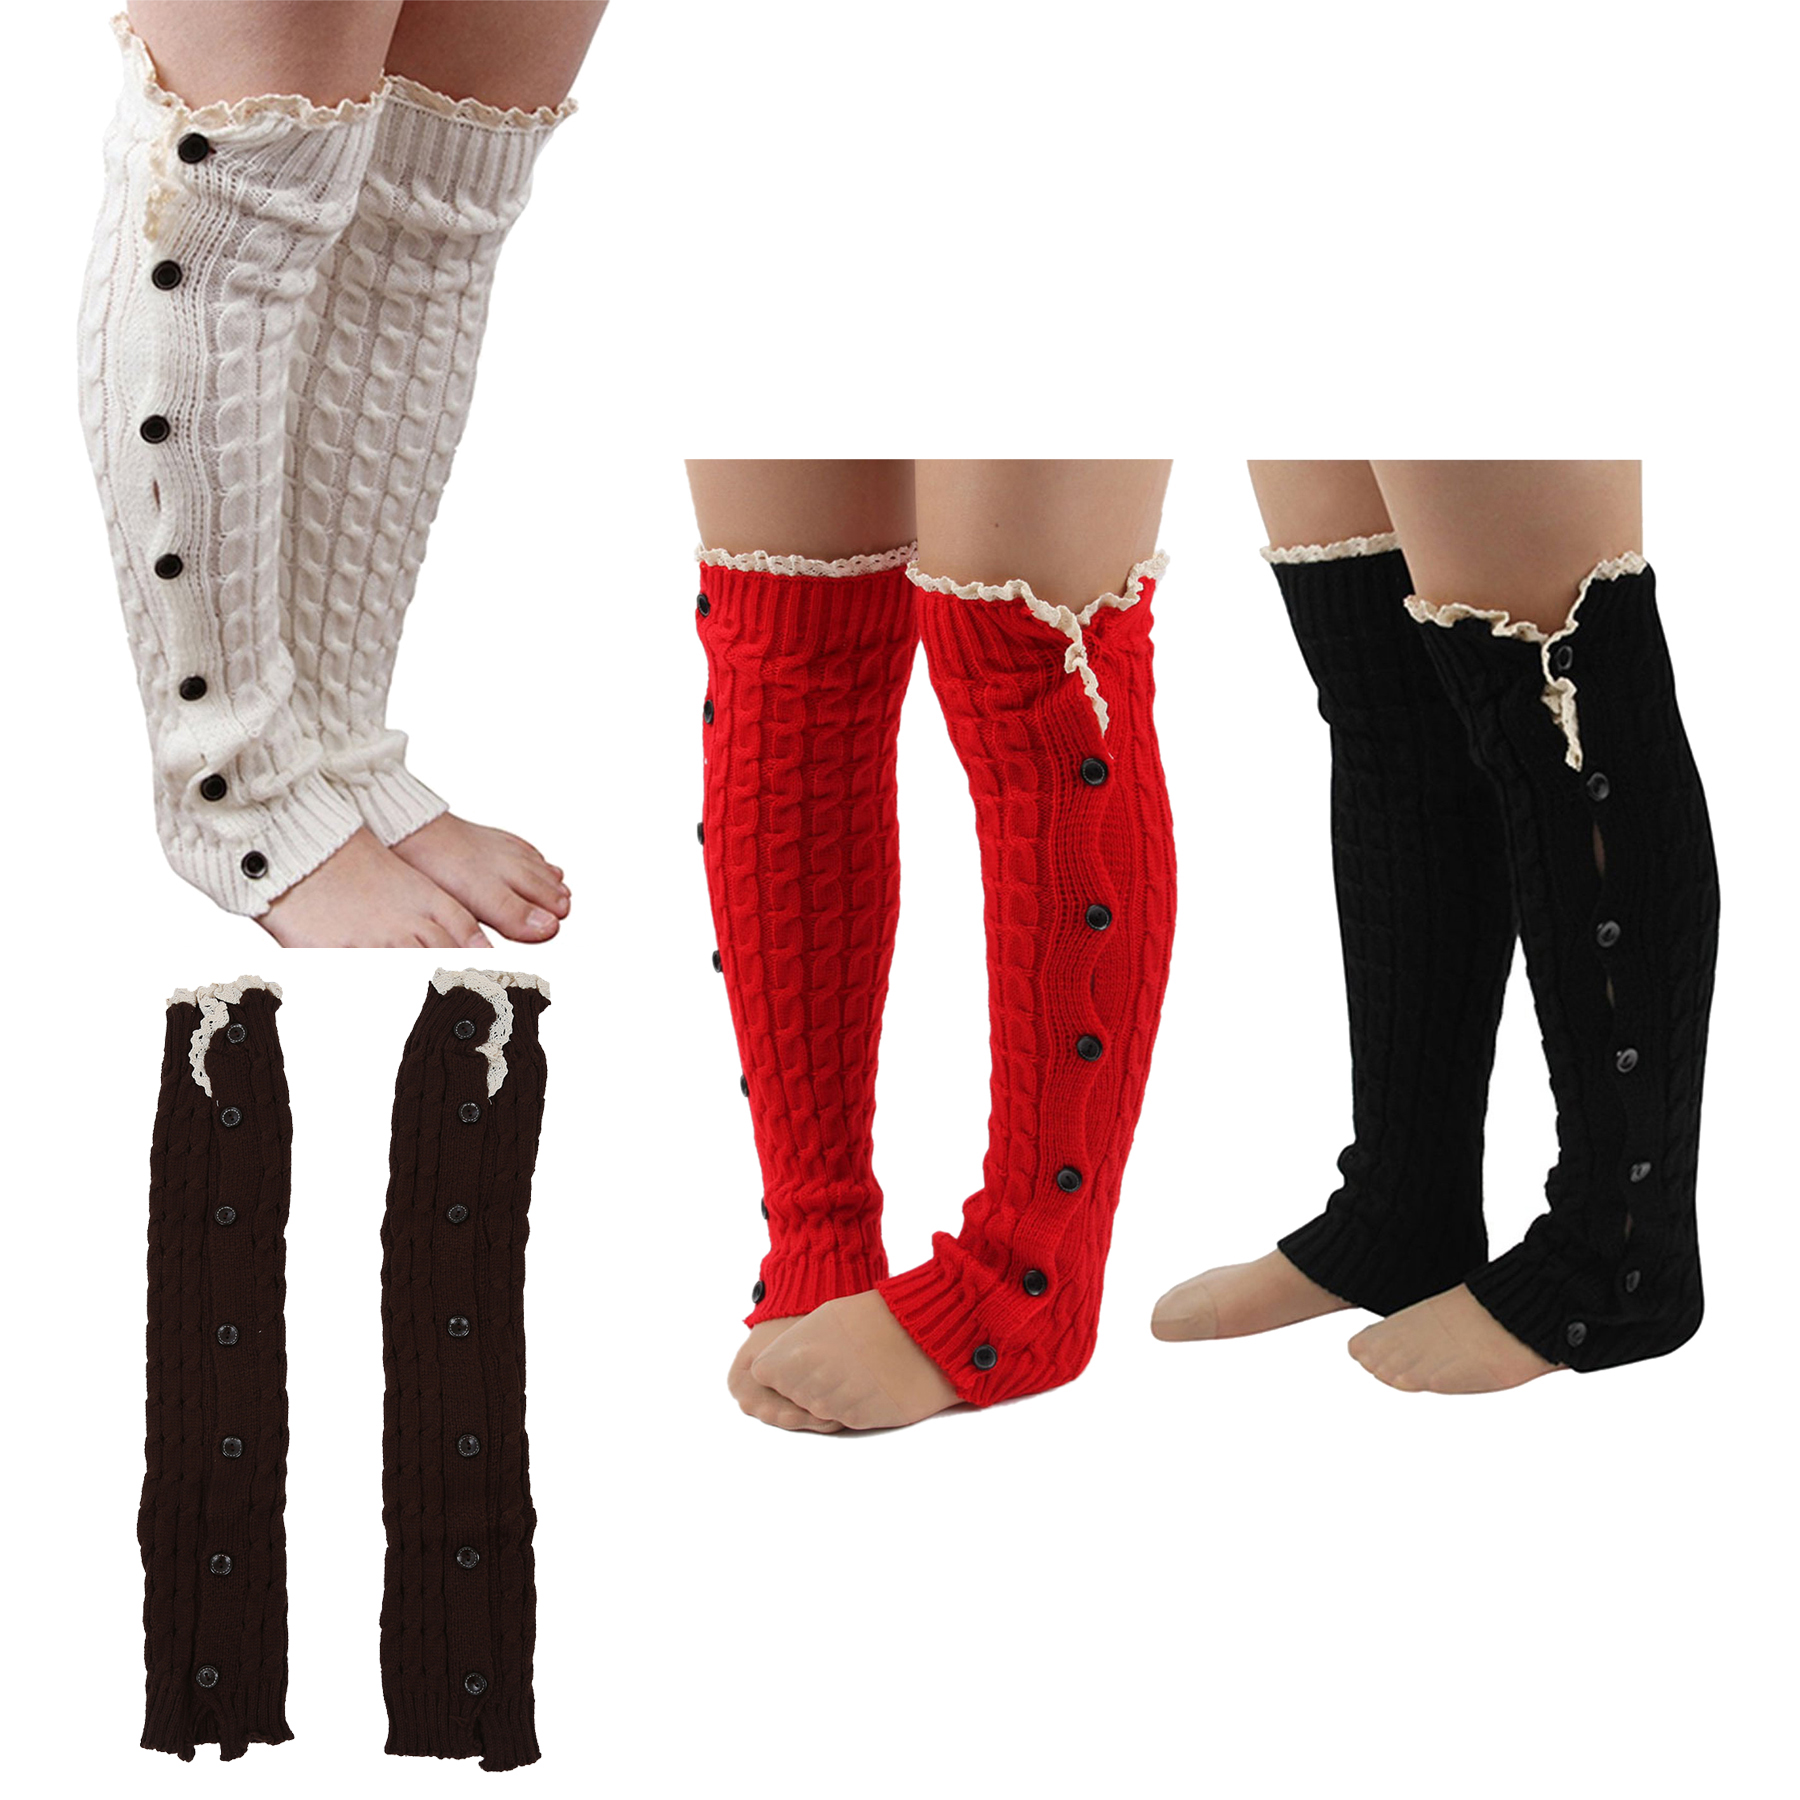 frauen crochet strickbeinlinge knopf spitzen schneiden stiefelsocken rot q6l3 ebay. Black Bedroom Furniture Sets. Home Design Ideas